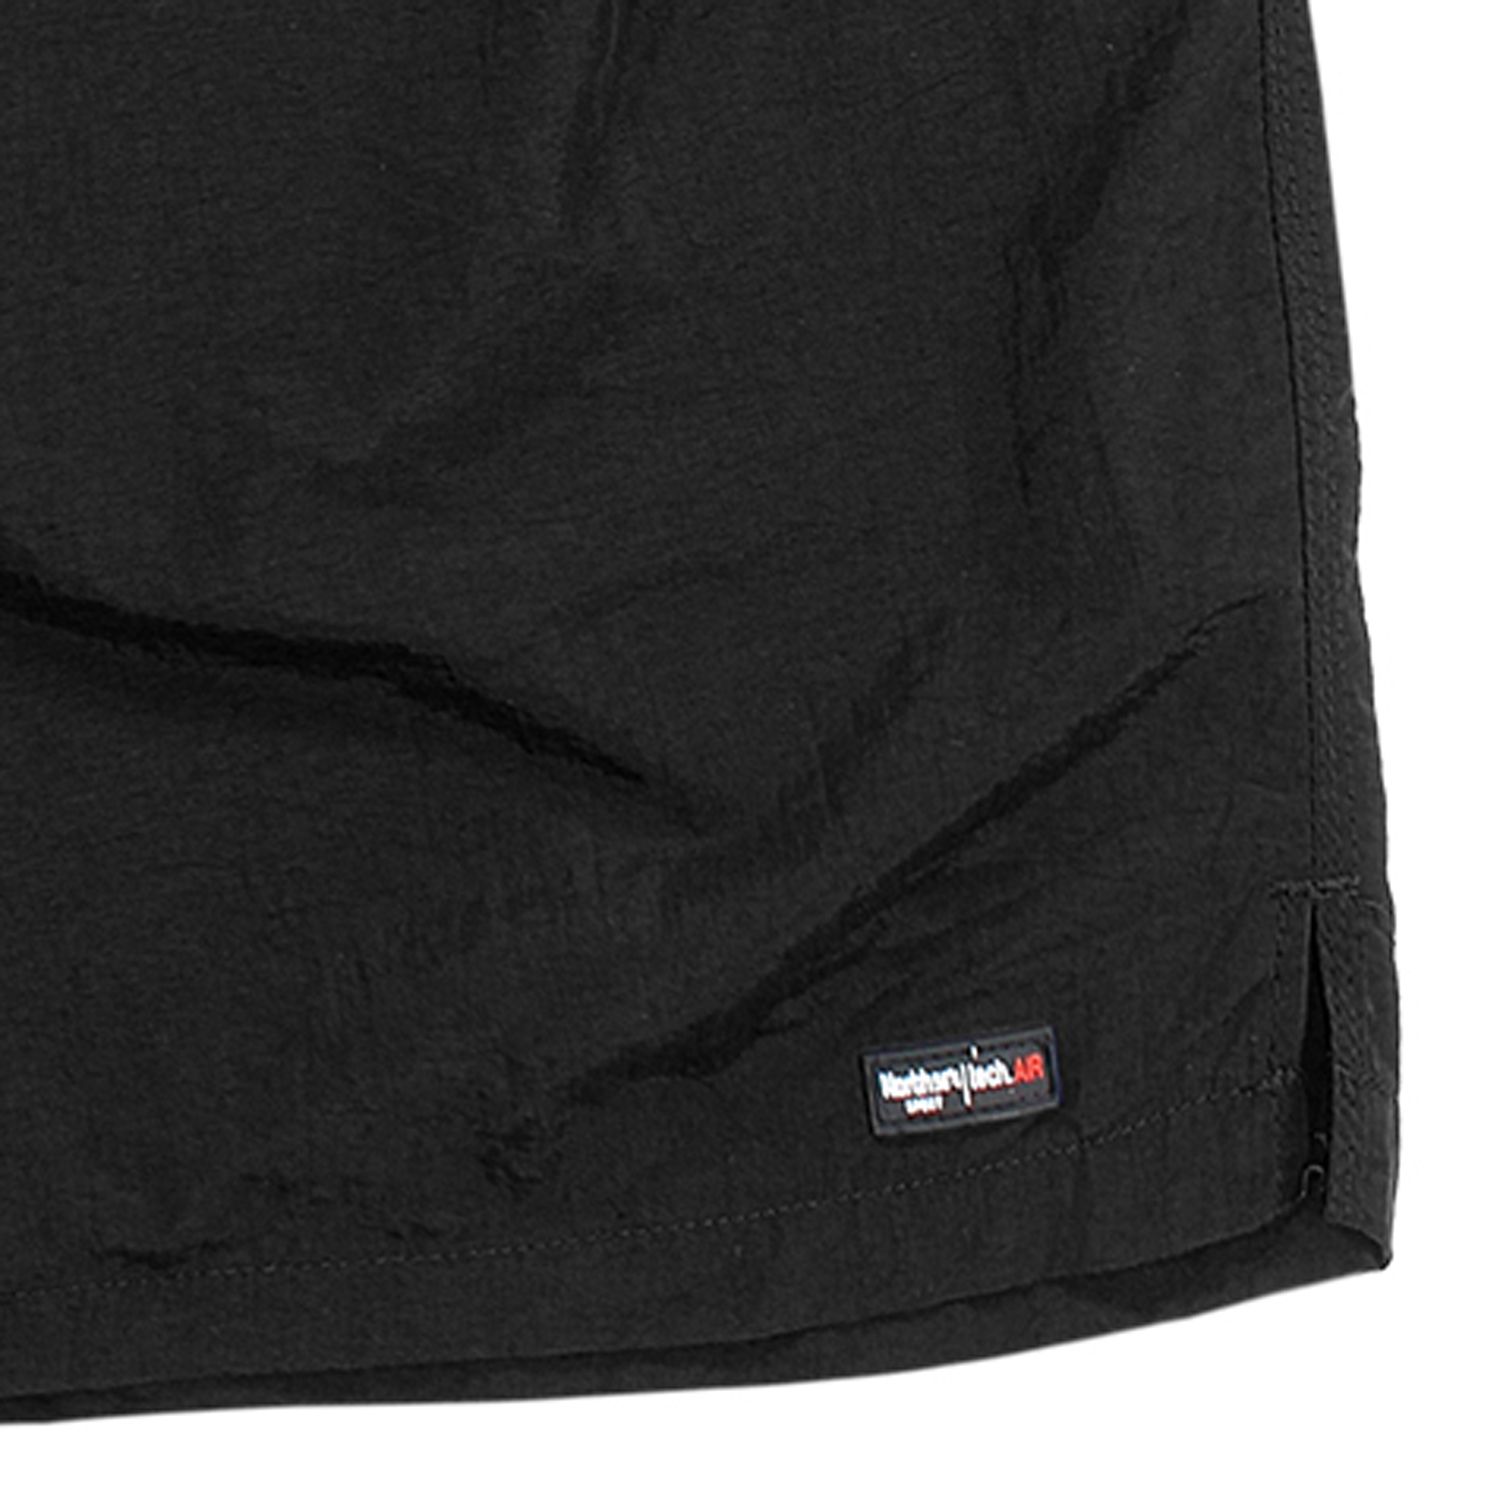 Detail Image to Swimming trunks in black by aero/North 56°4 up to oversize 8XL